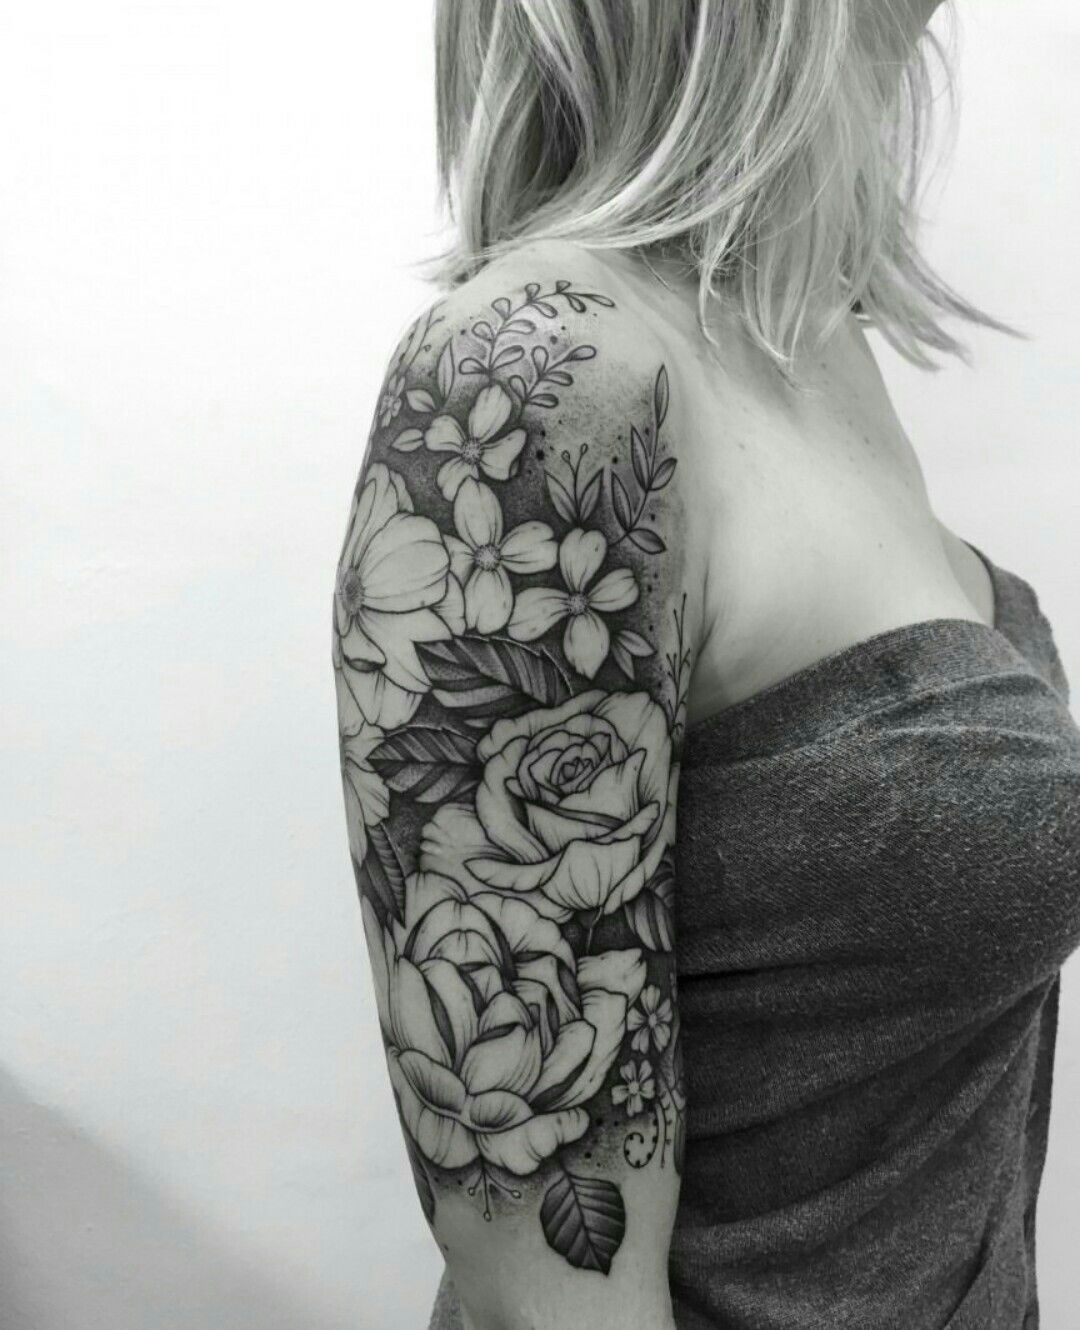 Pinterest Cnicolebbyxo With Images Floral Tattoo Sleeve Tattoo Sleeve Filler Tattoos